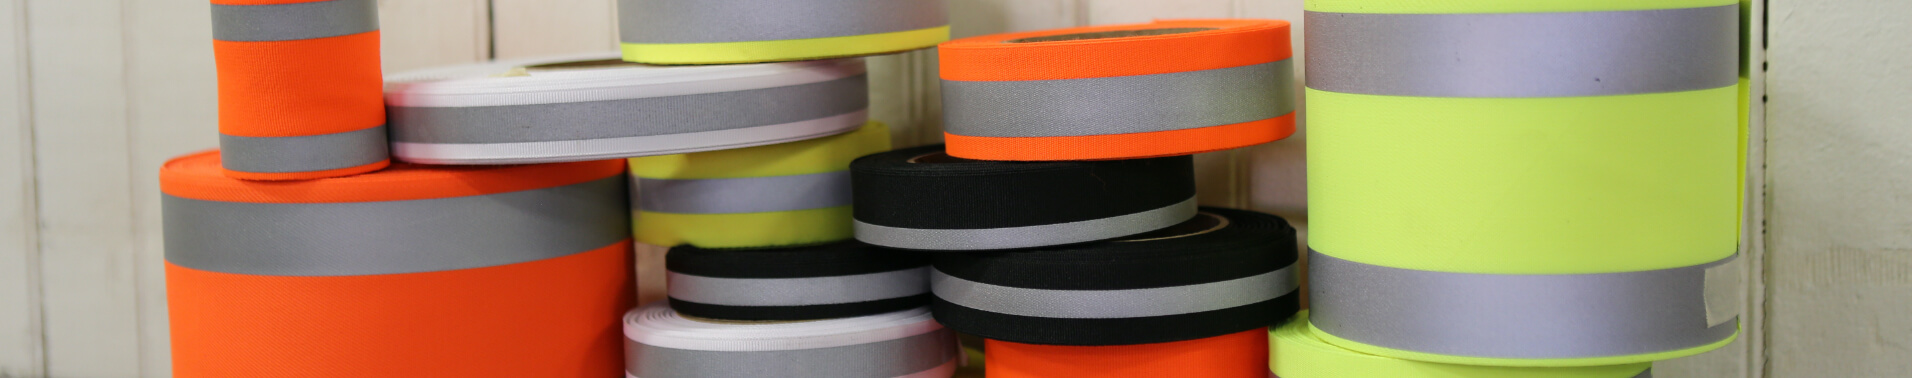 Spools of multi-colored reflective laminated fabric stacked on top of each other